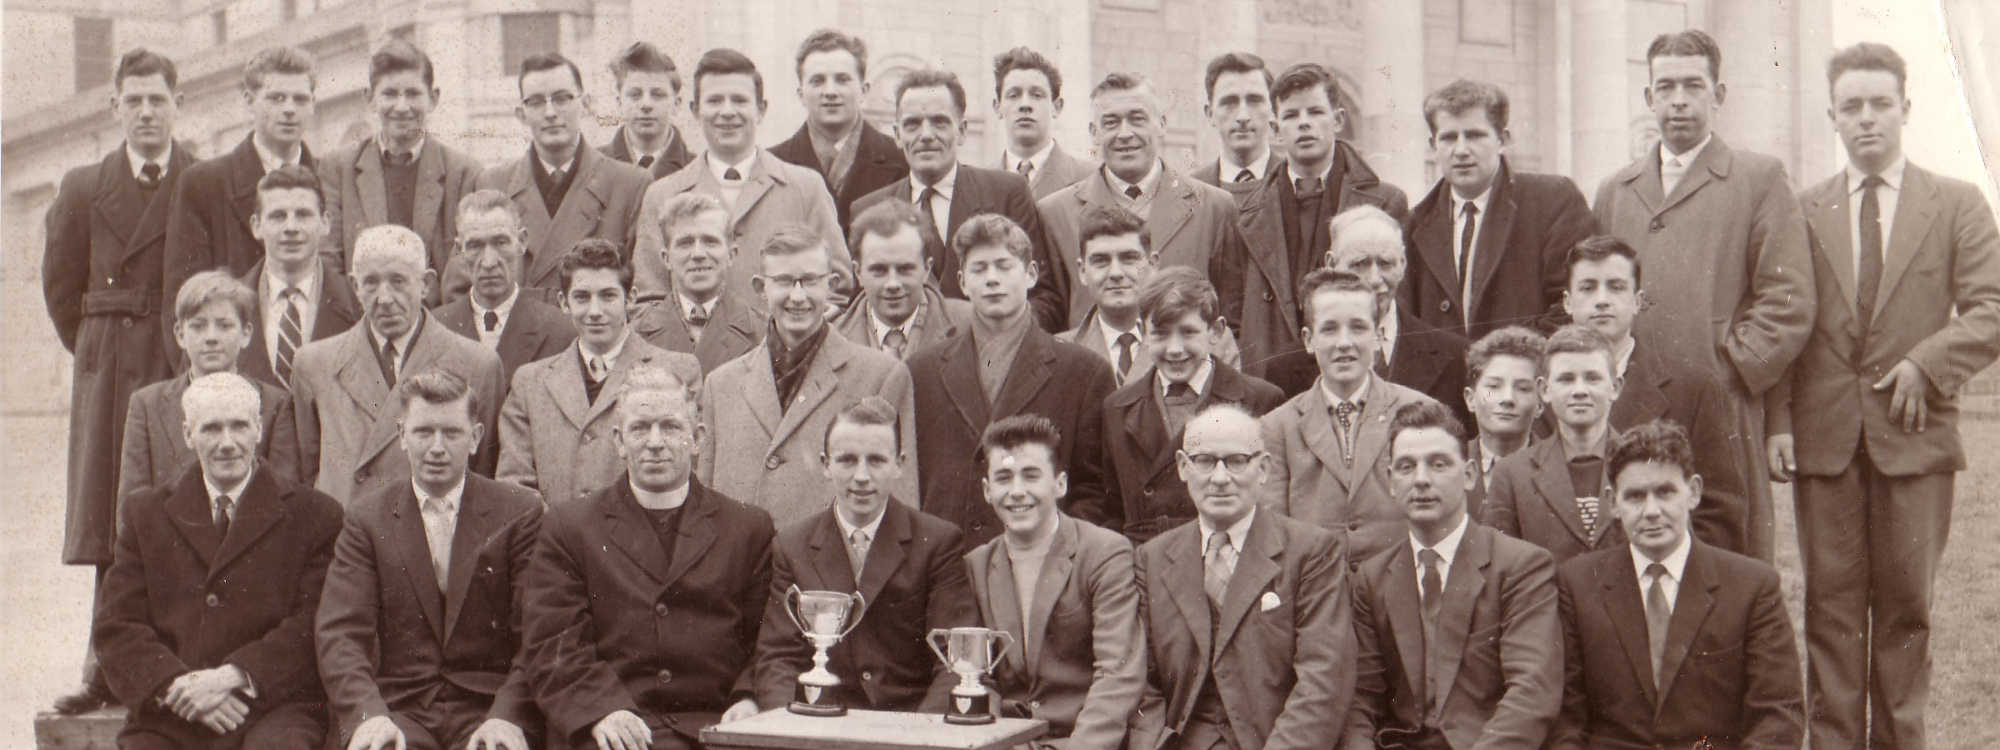 Billiards and Snooker Presentation at Cathedral 1960